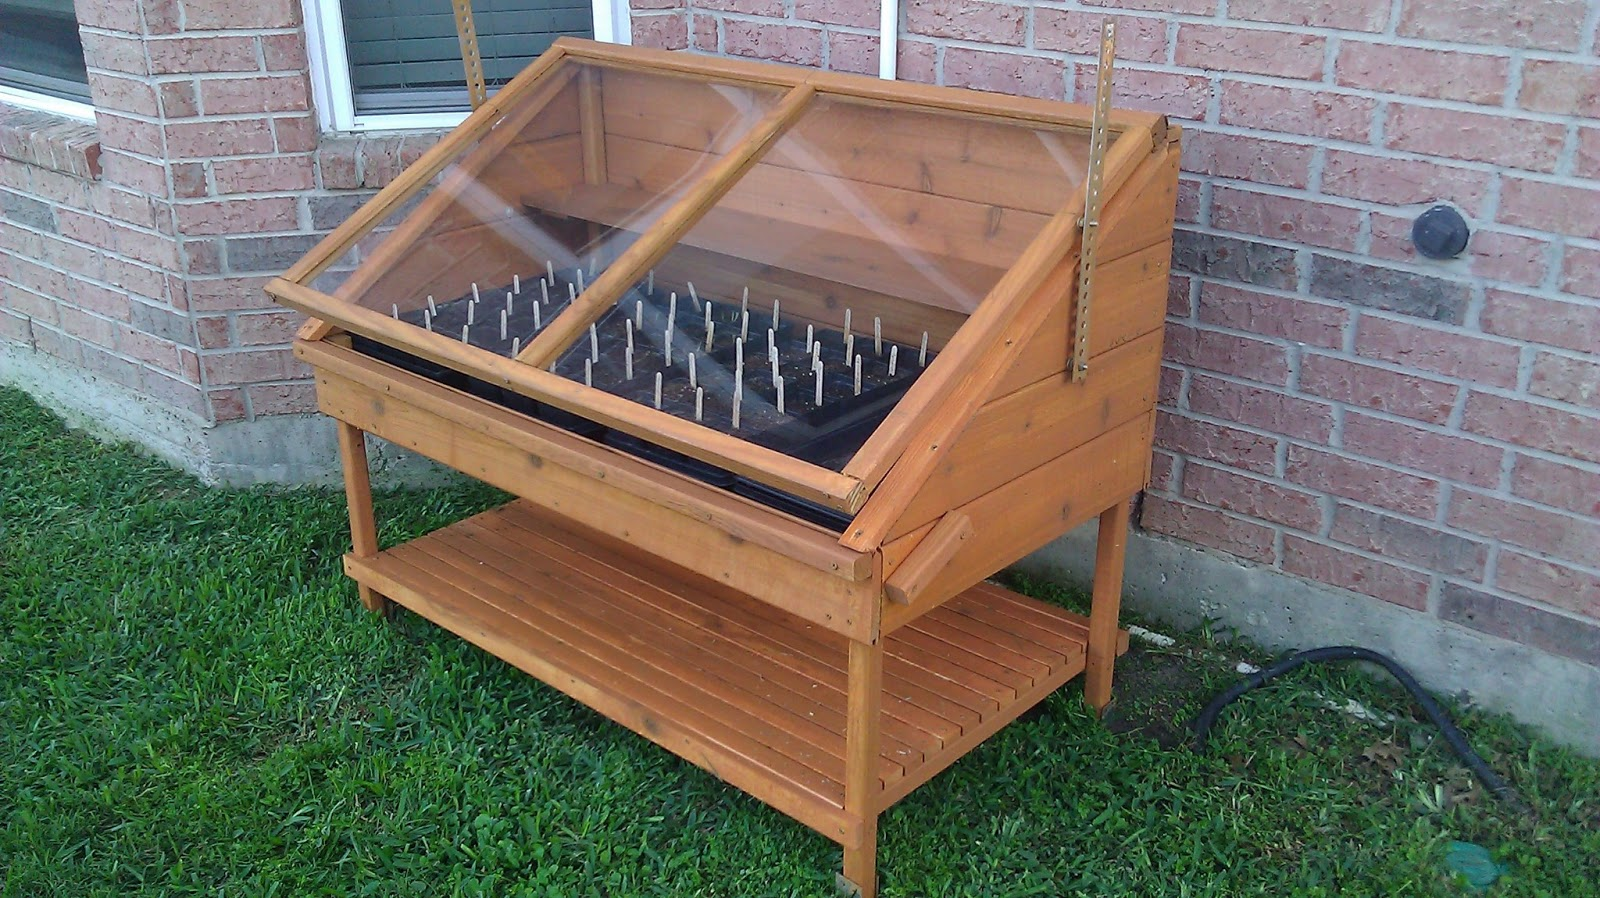 ... Frame Plans also Homemade Greenhouse Plans. on diy green house plans